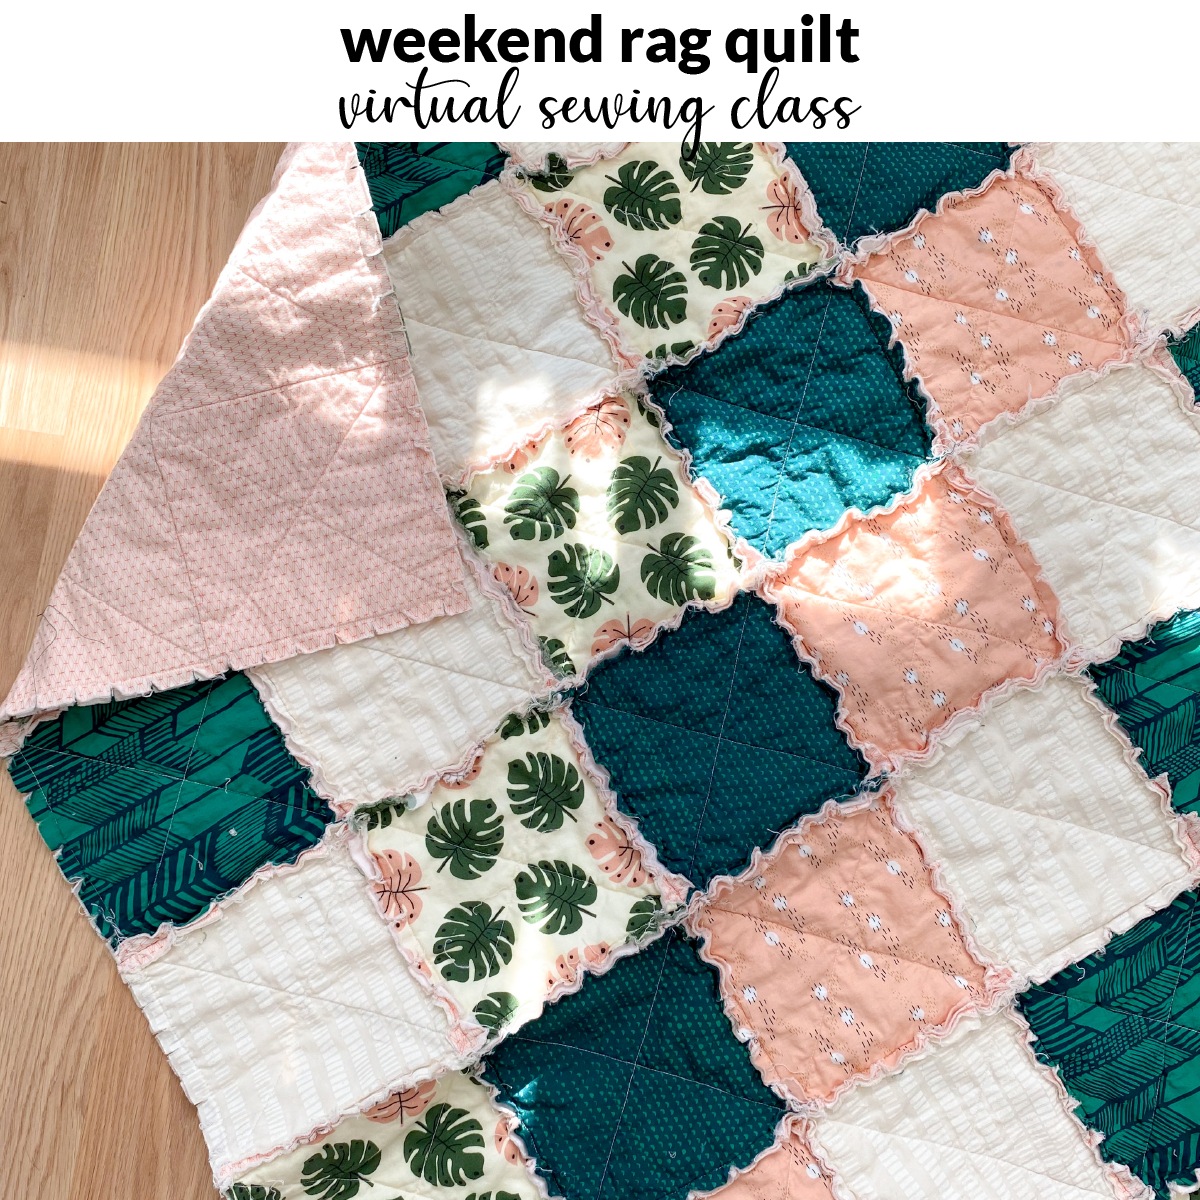 Weekend Rag Quilt - Virtual Sewing Class